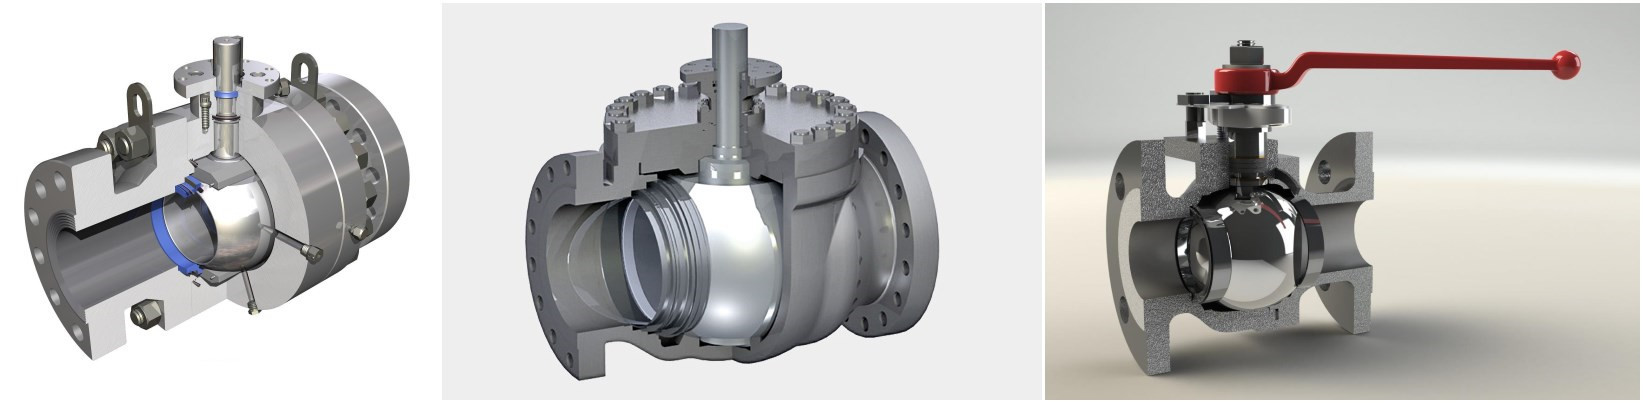 Excellent quality ball lathe turner for machining ball